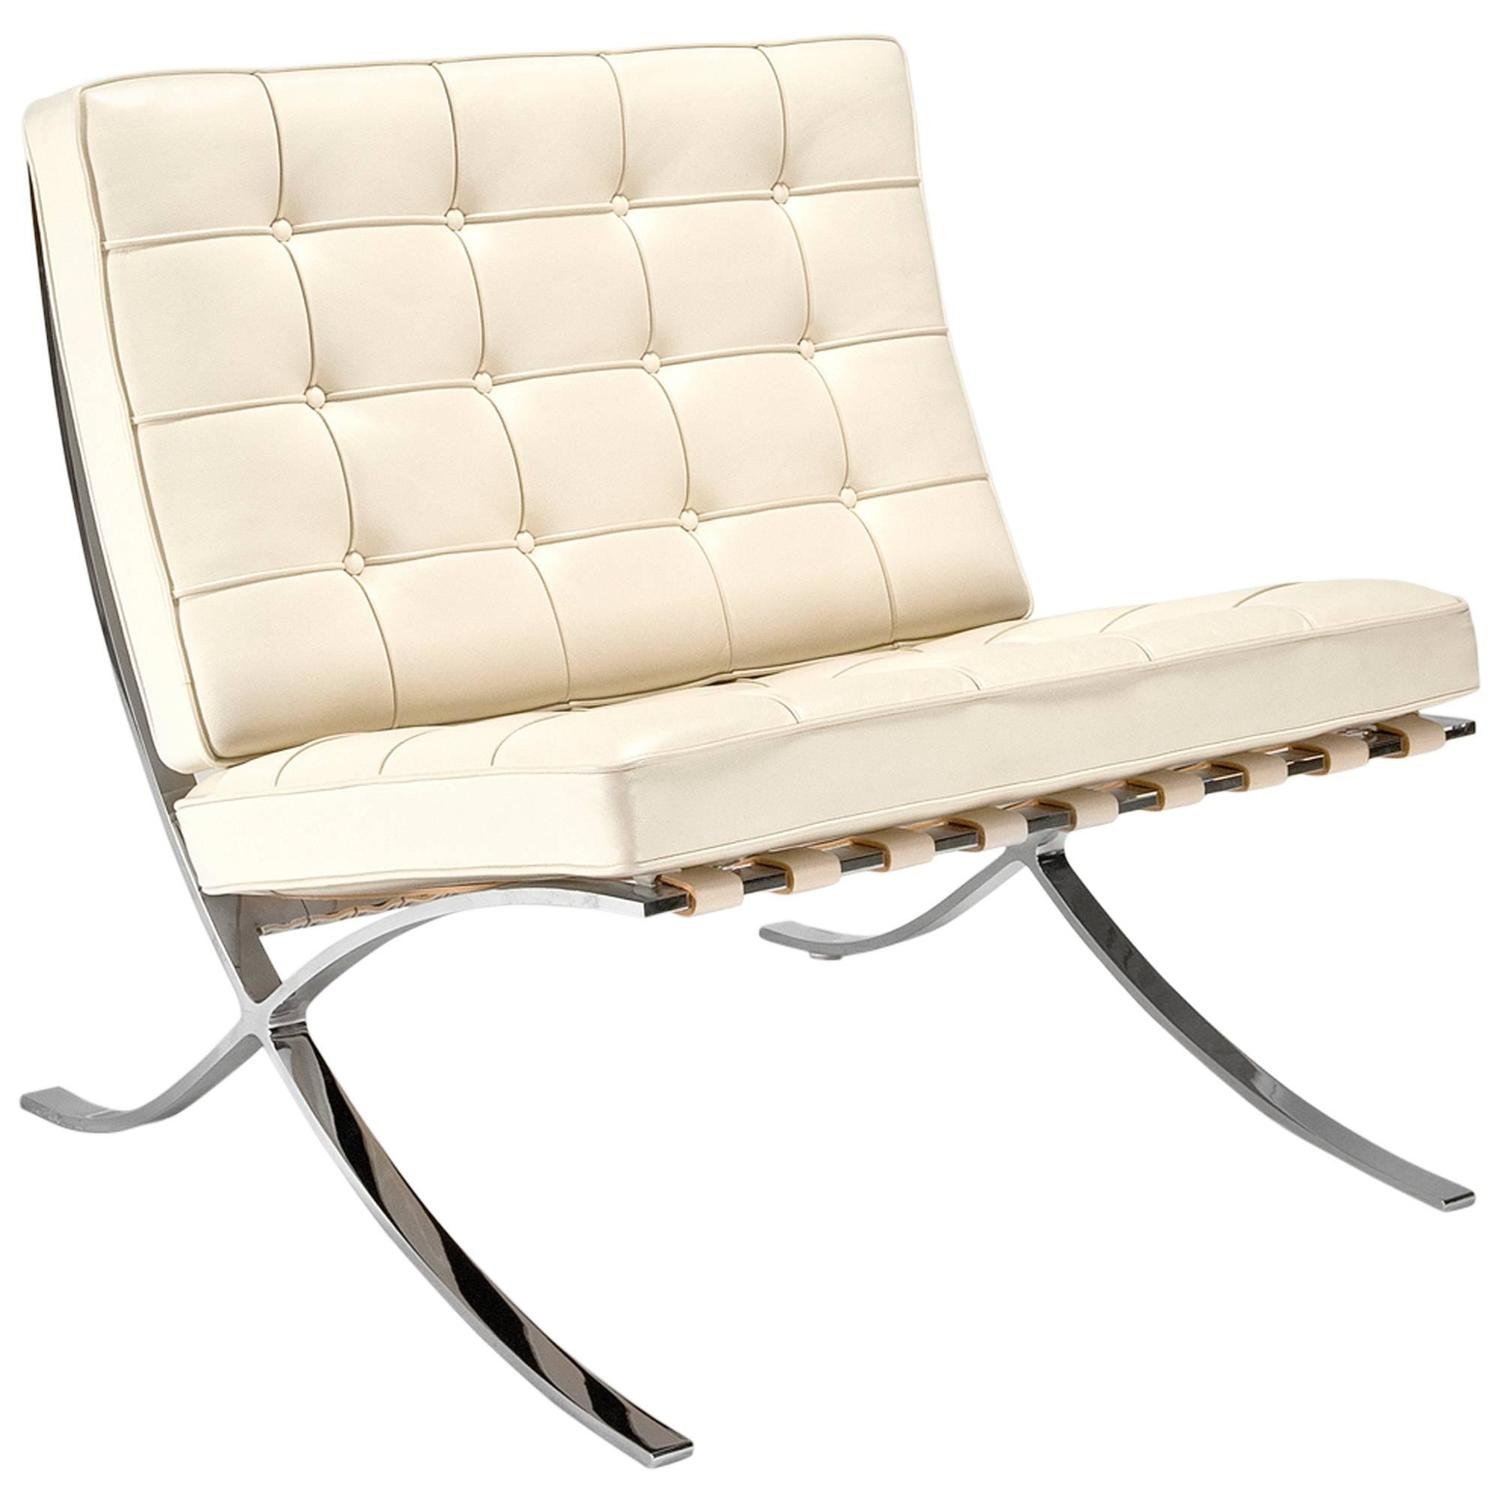 barcelona chair used best pedicure chairs reviews by ludwig mies van der rohe at 1stdibs